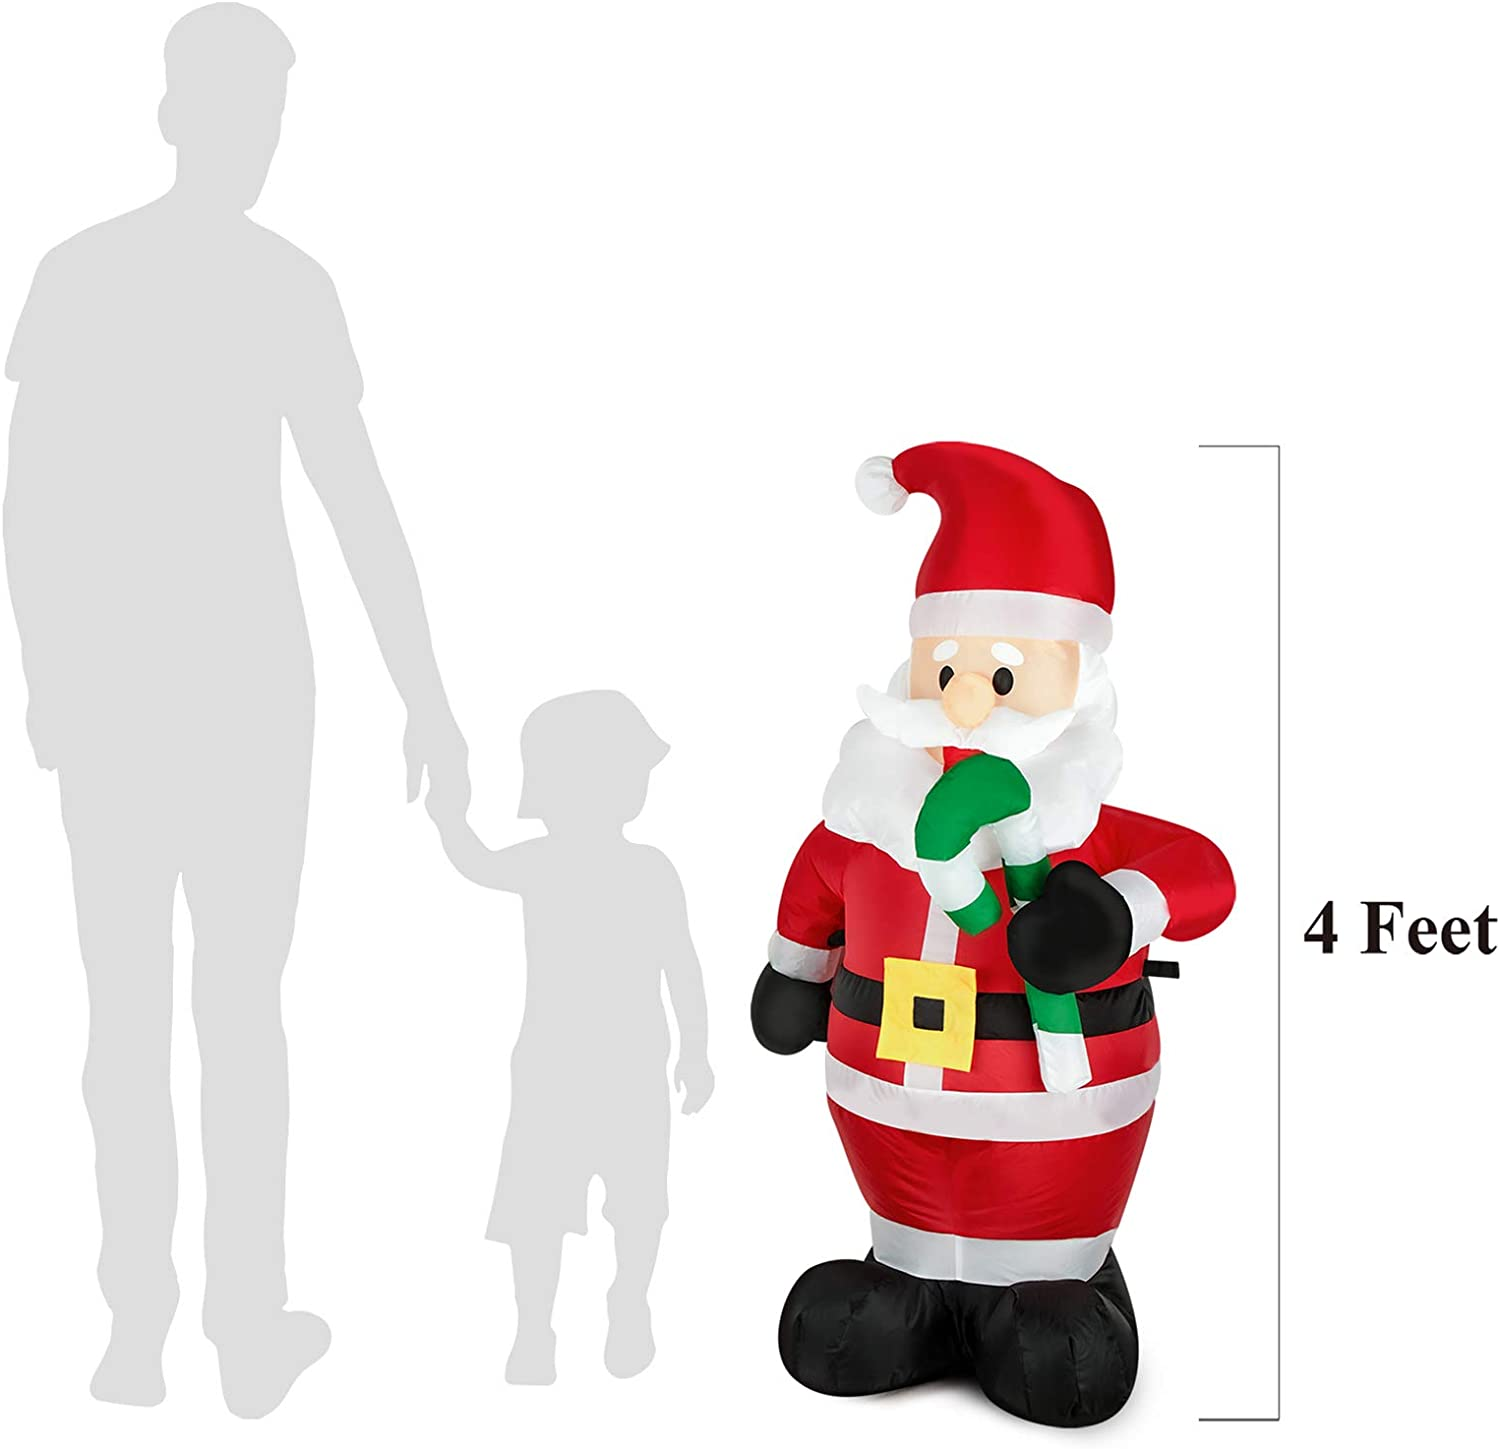 4FT-Santa FARONZE Christmas Inflatable Nutcracker Giant Lighted Interior//Airblown Inflatable Christmas Decoration with Built in Fan and Anchor Ropes